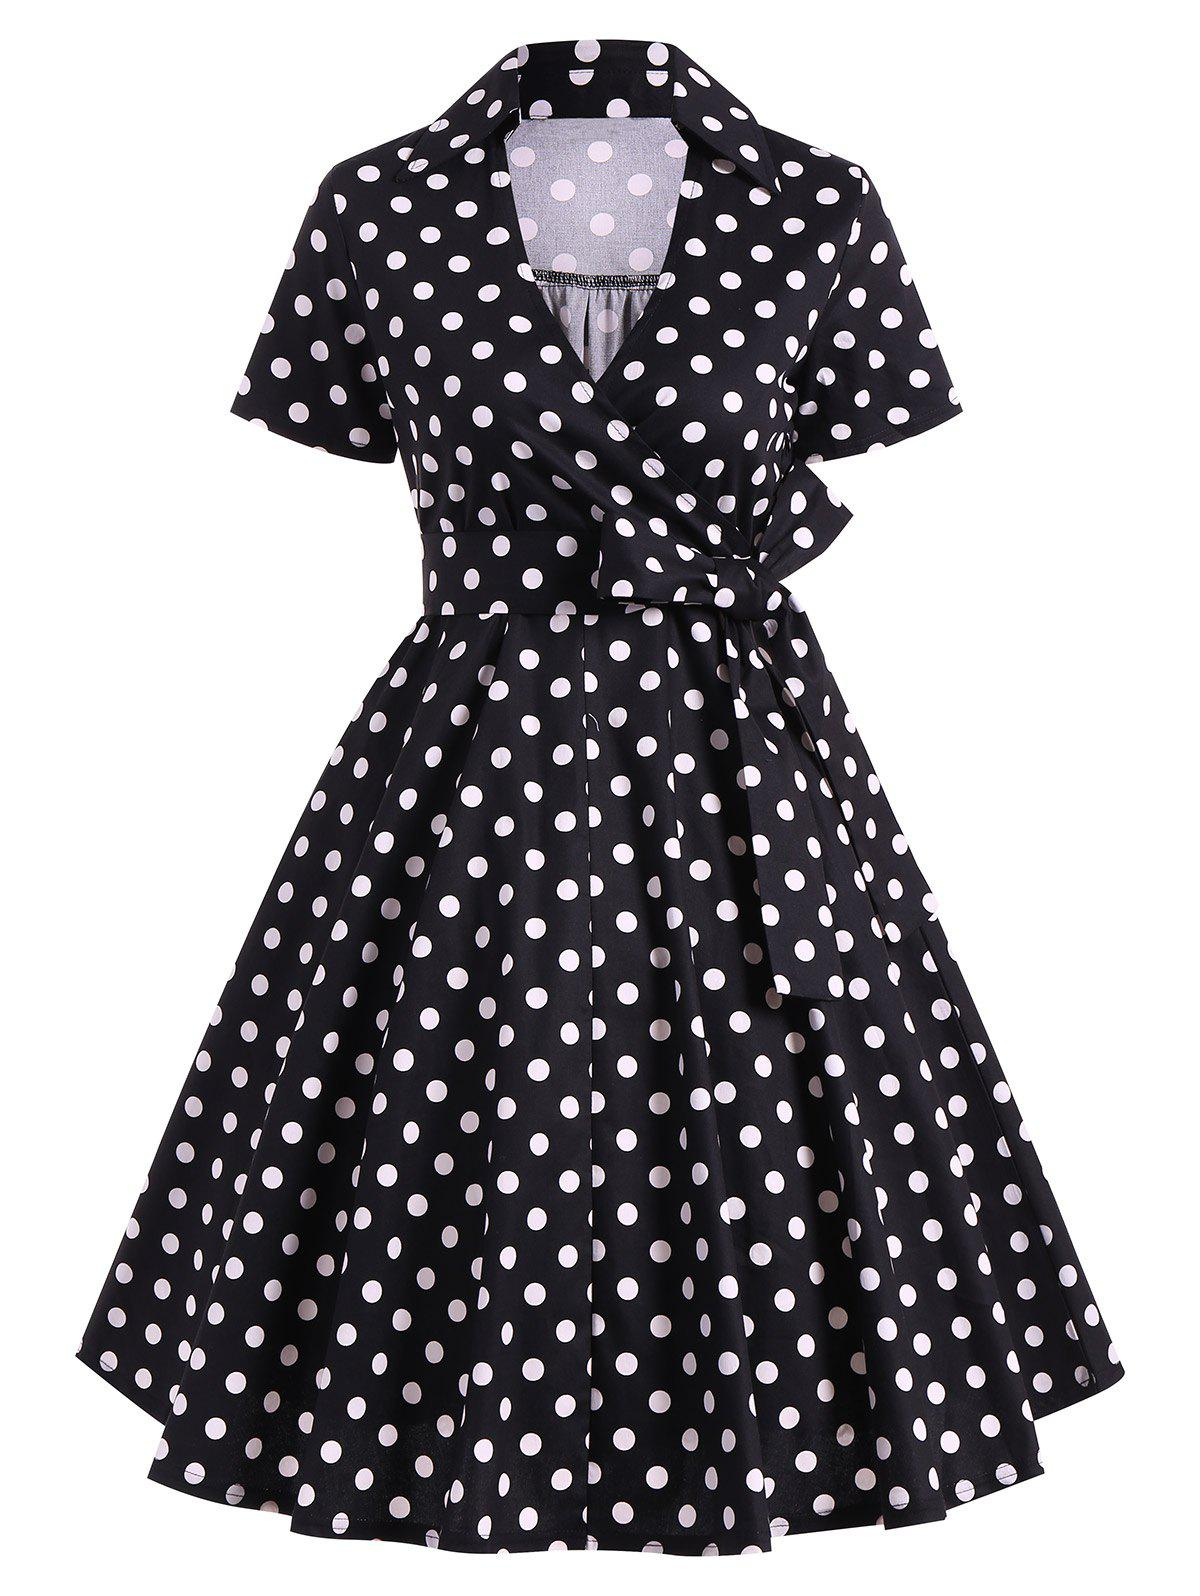 Retro Hepburn Style Polka Dot Bowknot Belted Swing Wrap Dress - BLACK M